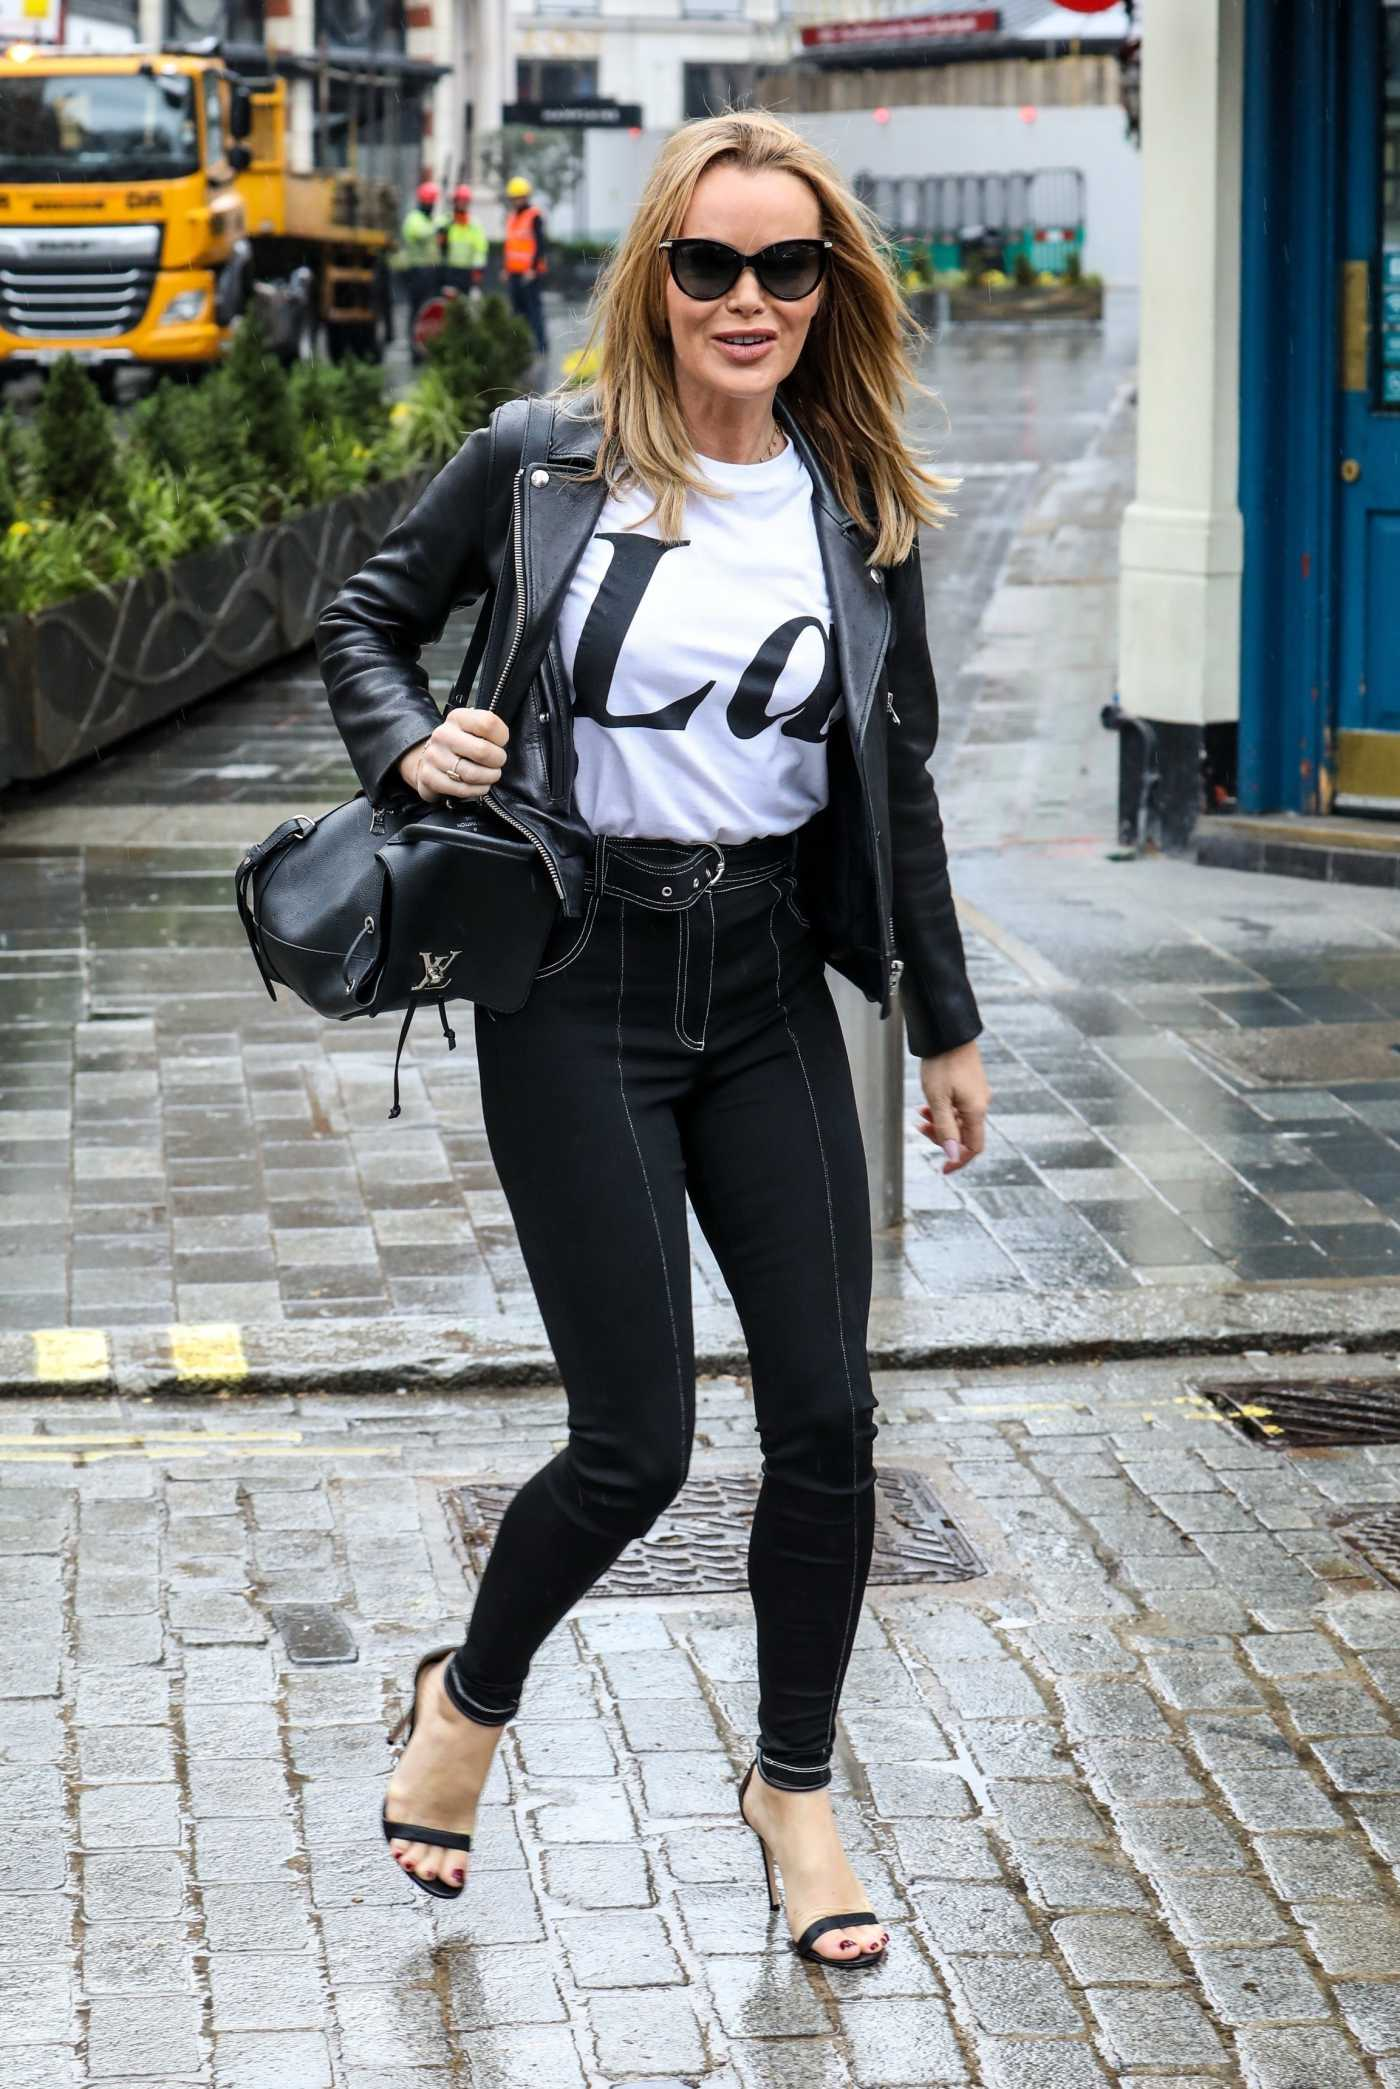 Amanda Holden in a Black Leather Jacket Leaves the Global Radio Studios in London 03/10/2021